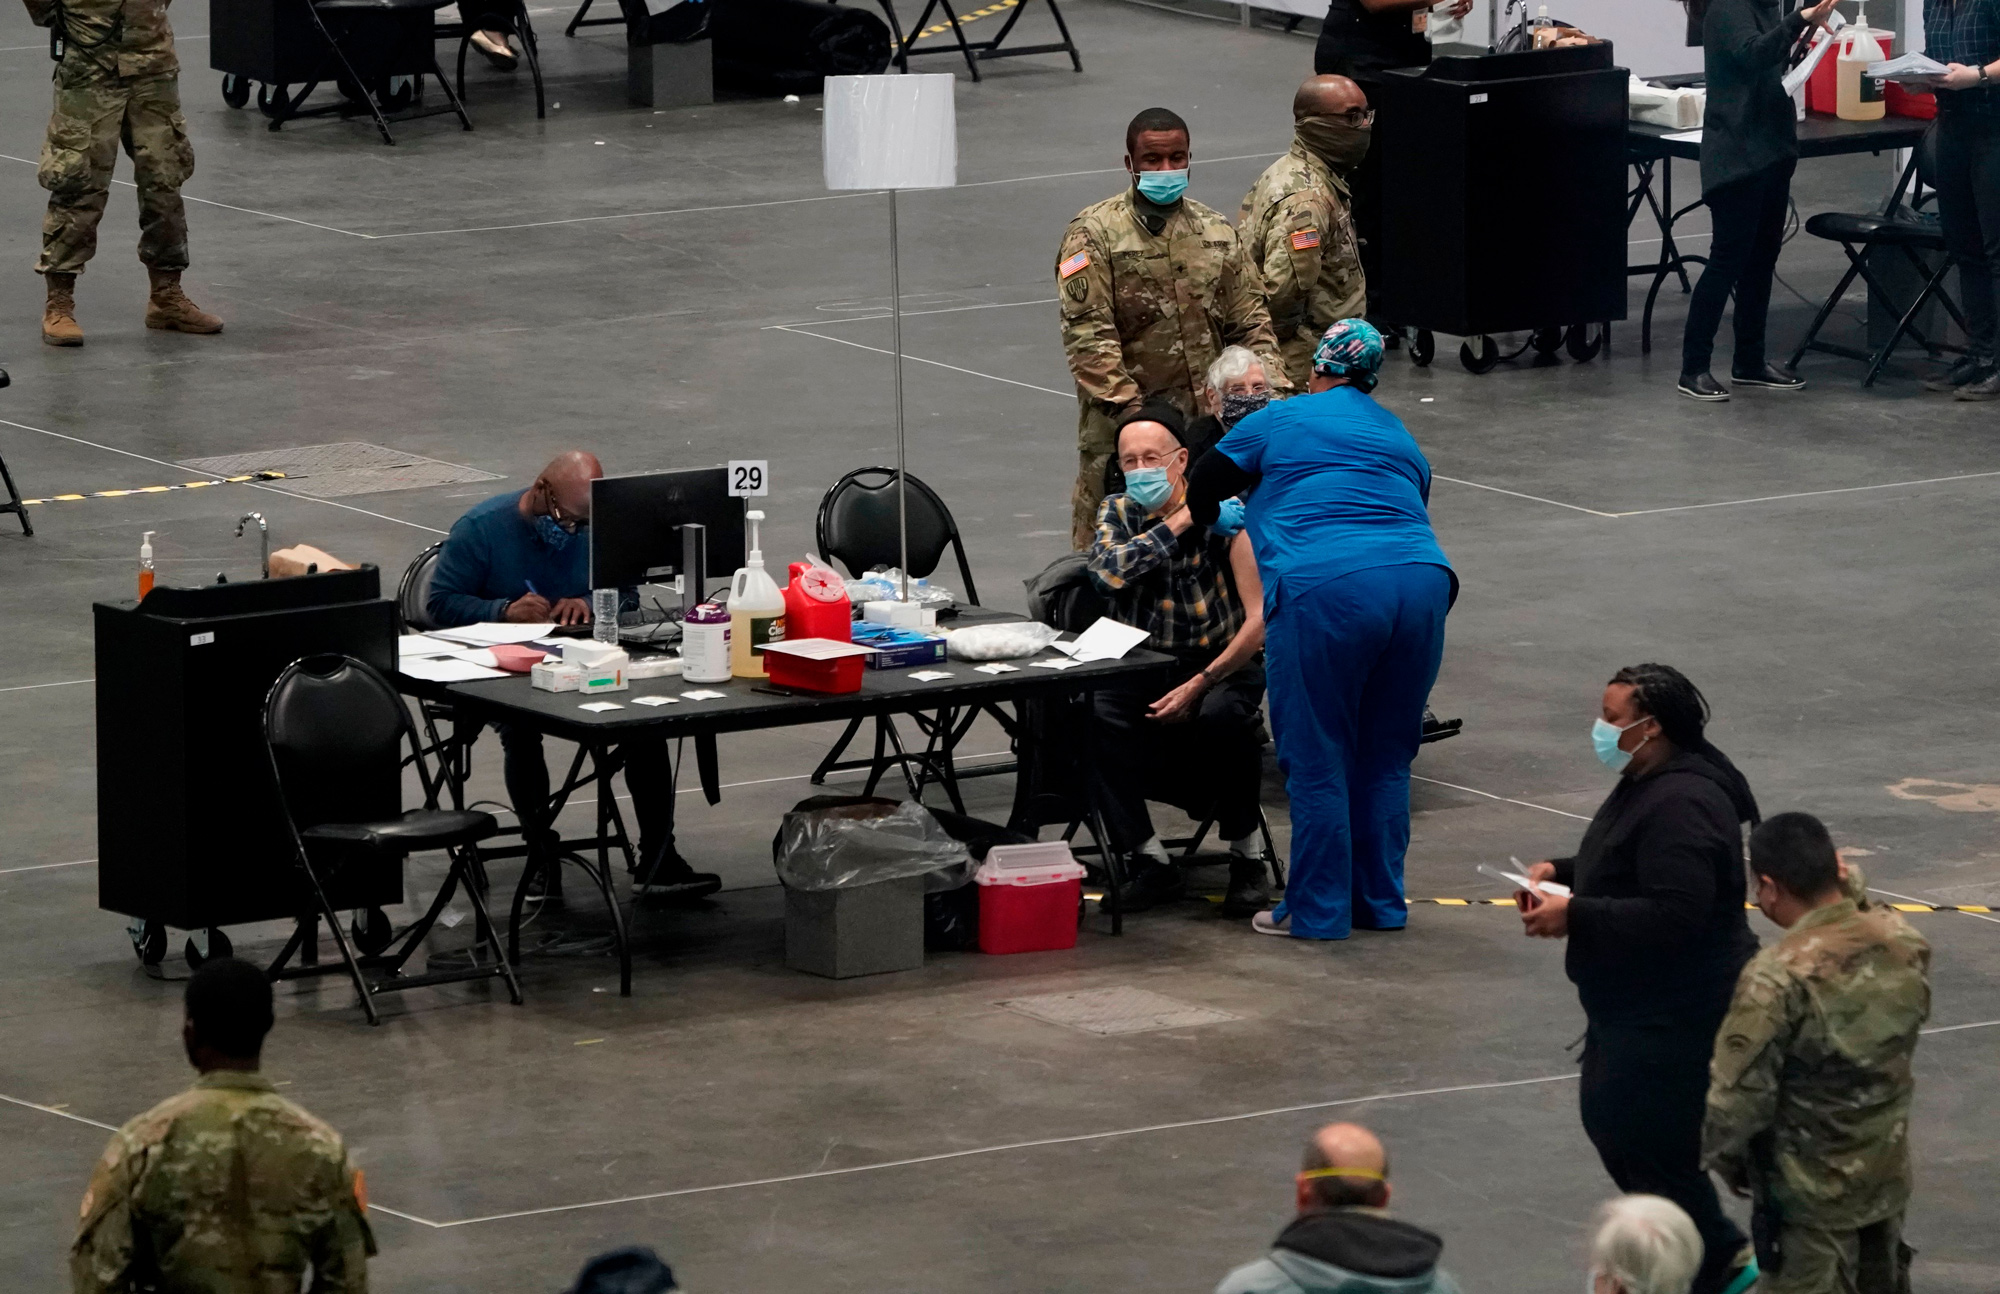 People are vaccinated at the Jacob K. Javits Convention Center on January 13 in New York City.